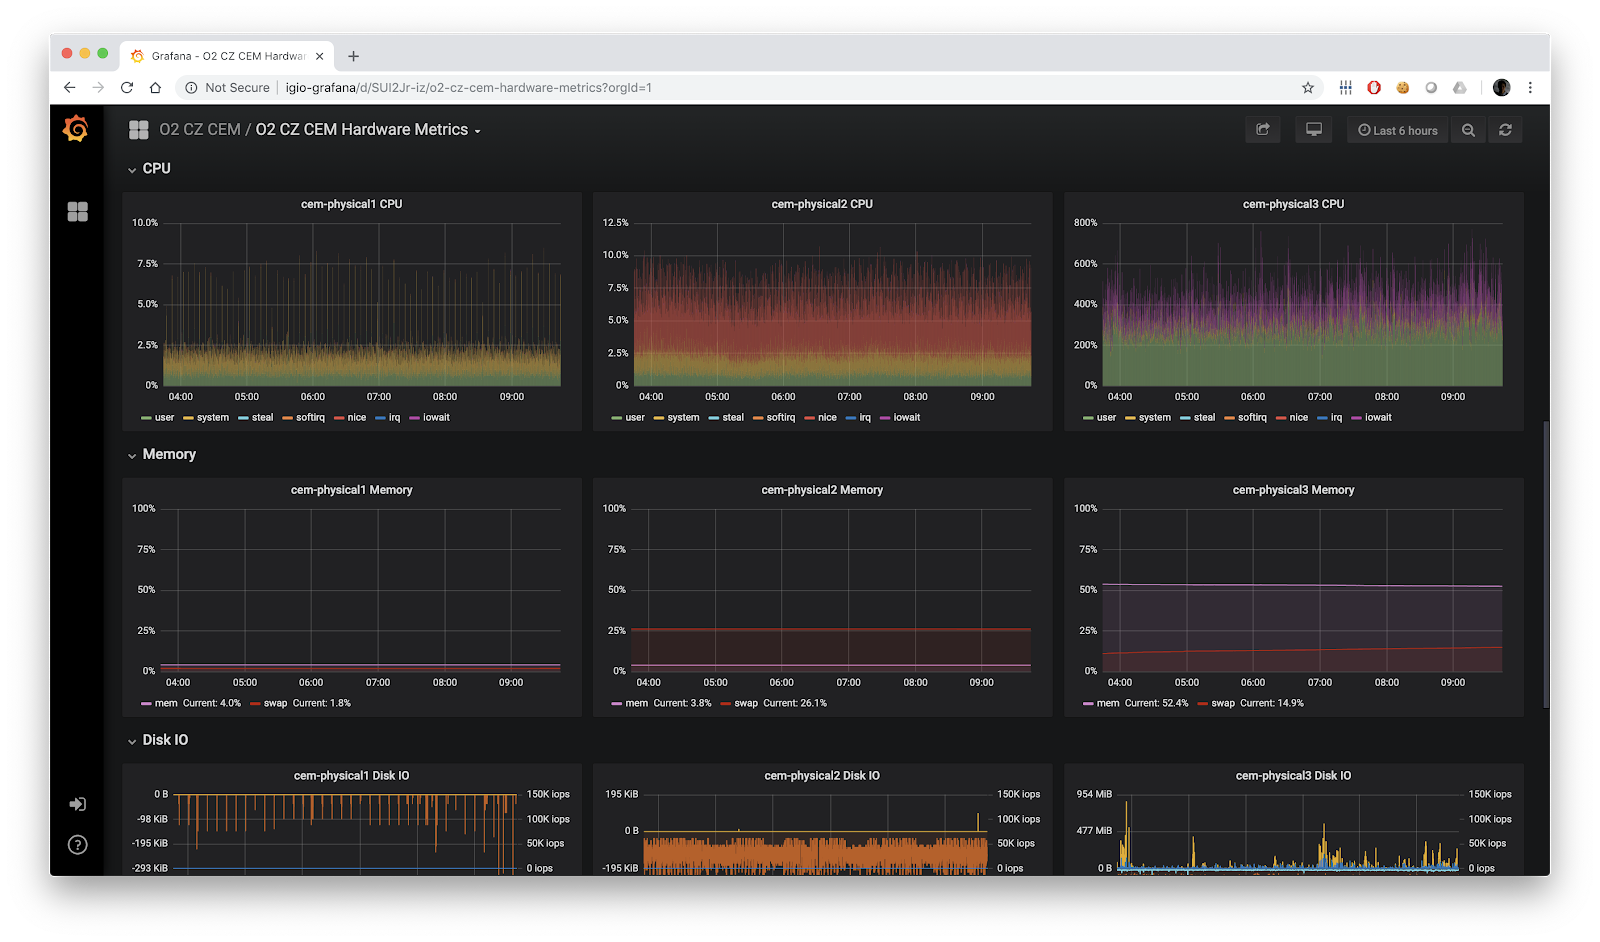 Performance in Grafana